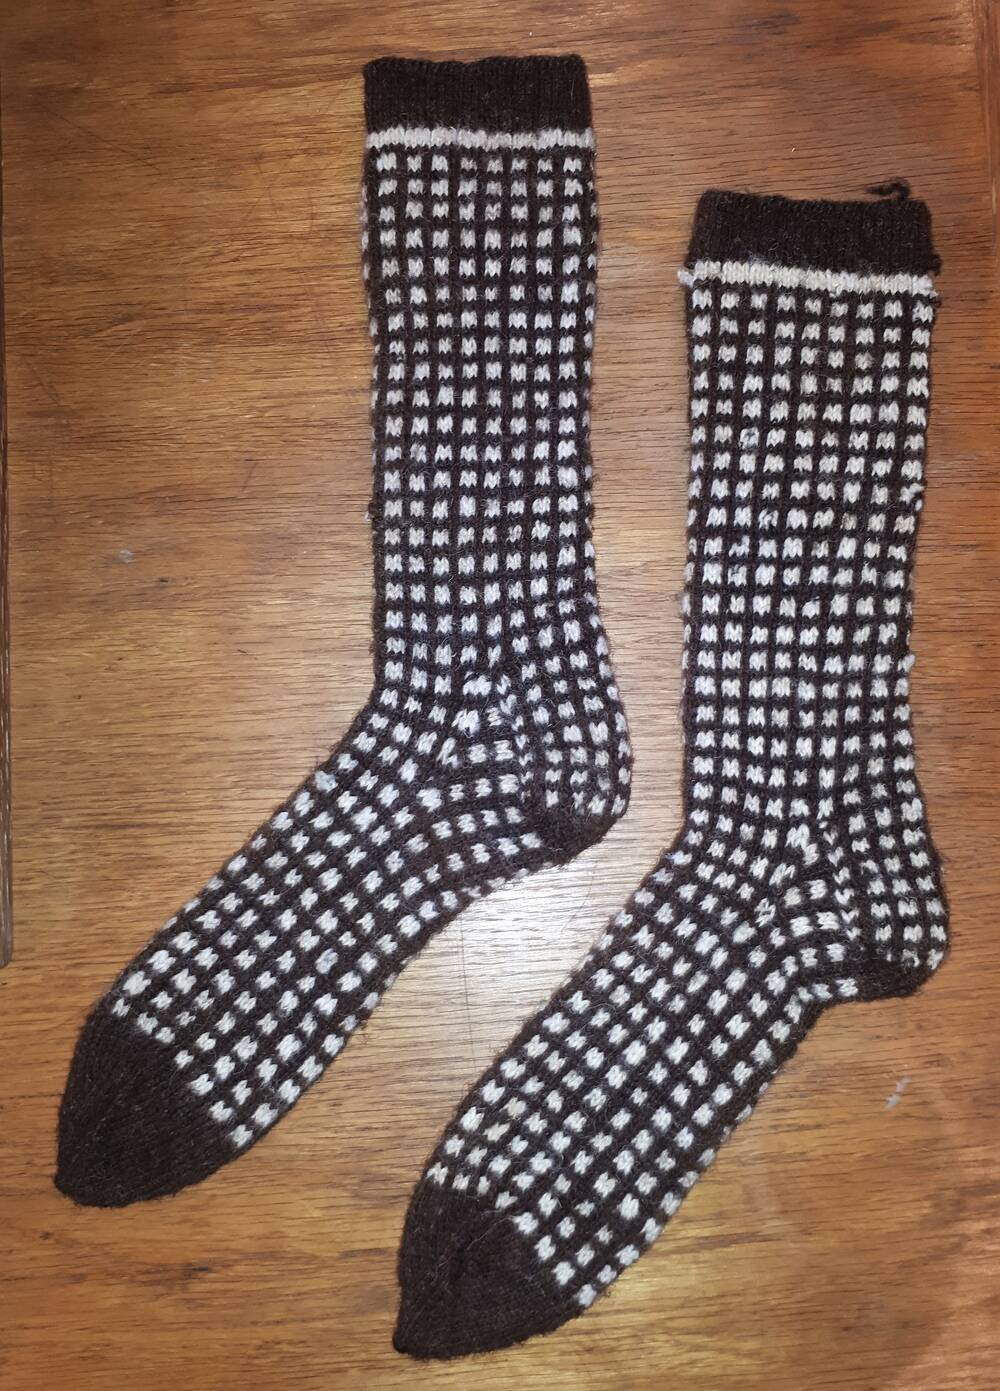 These socks were made on St Kilda from the wool of native sheep